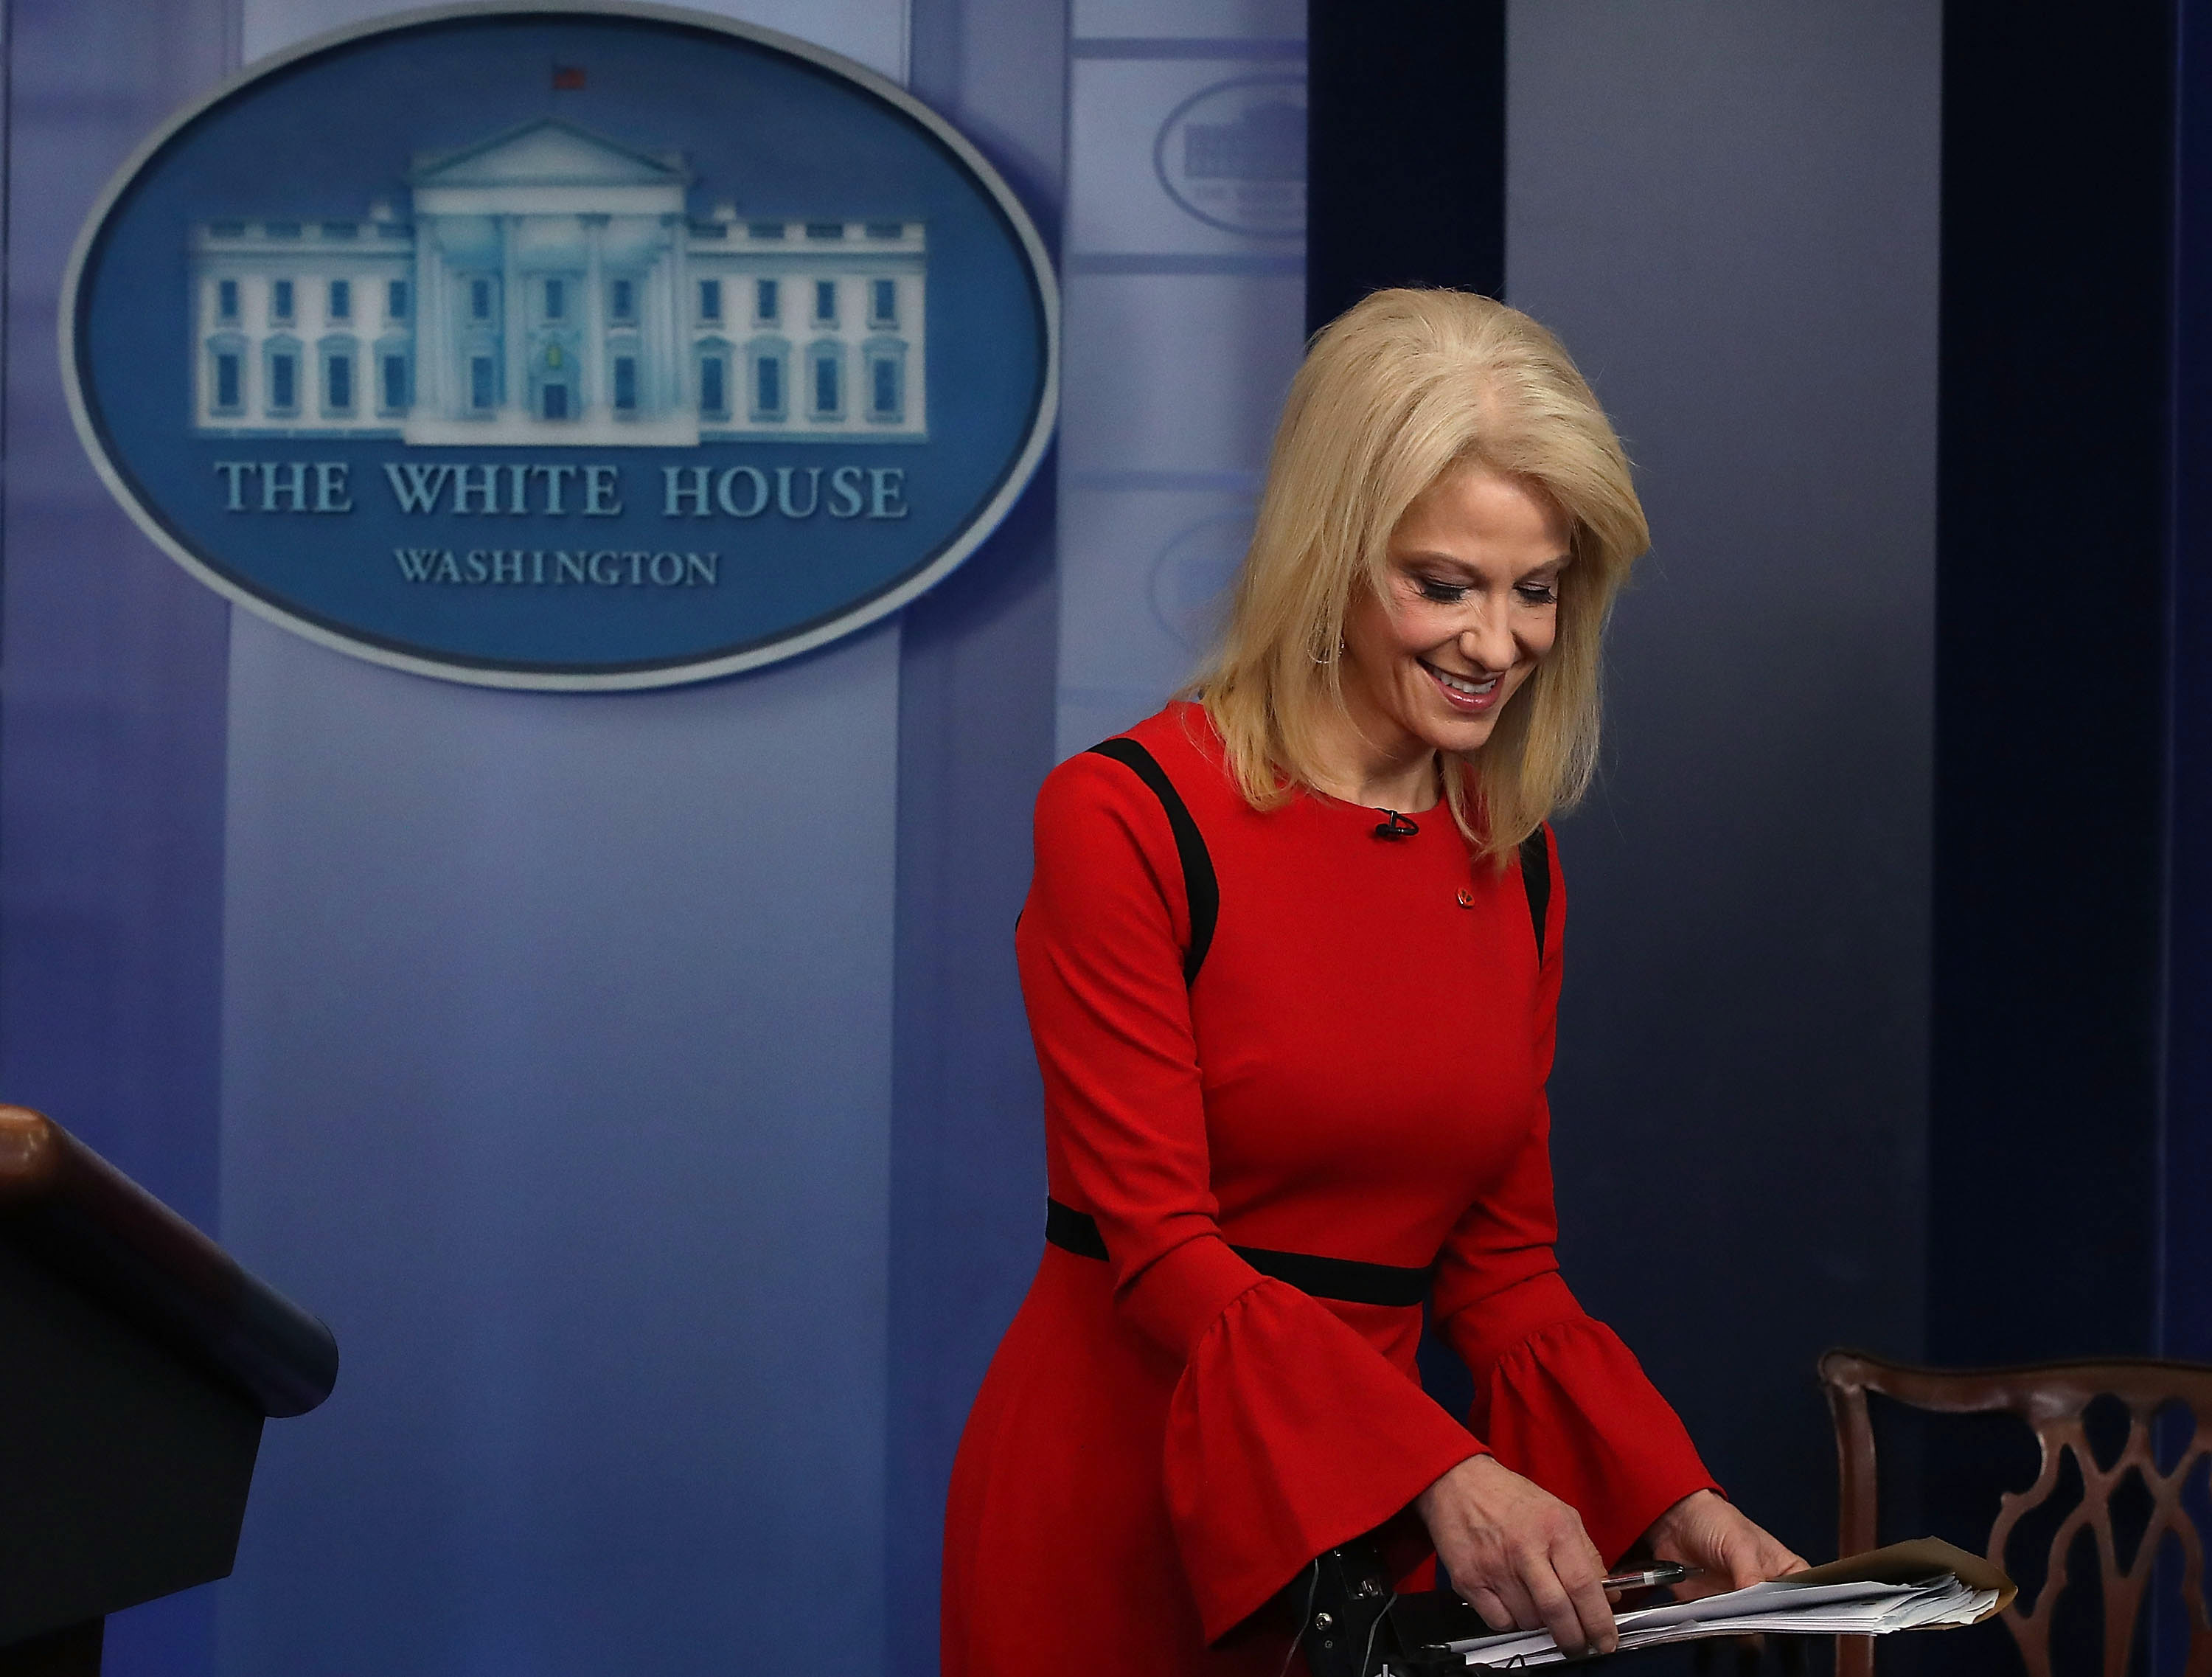 WASHINGTON, DC - MARCH 23:  White House counselor Kellyanne Conway finishes an interview with CNN, in the briefing Room at the White House on March 23, 2018 in Washington, DC.  (Photo by Mark Wilson/Getty Images)